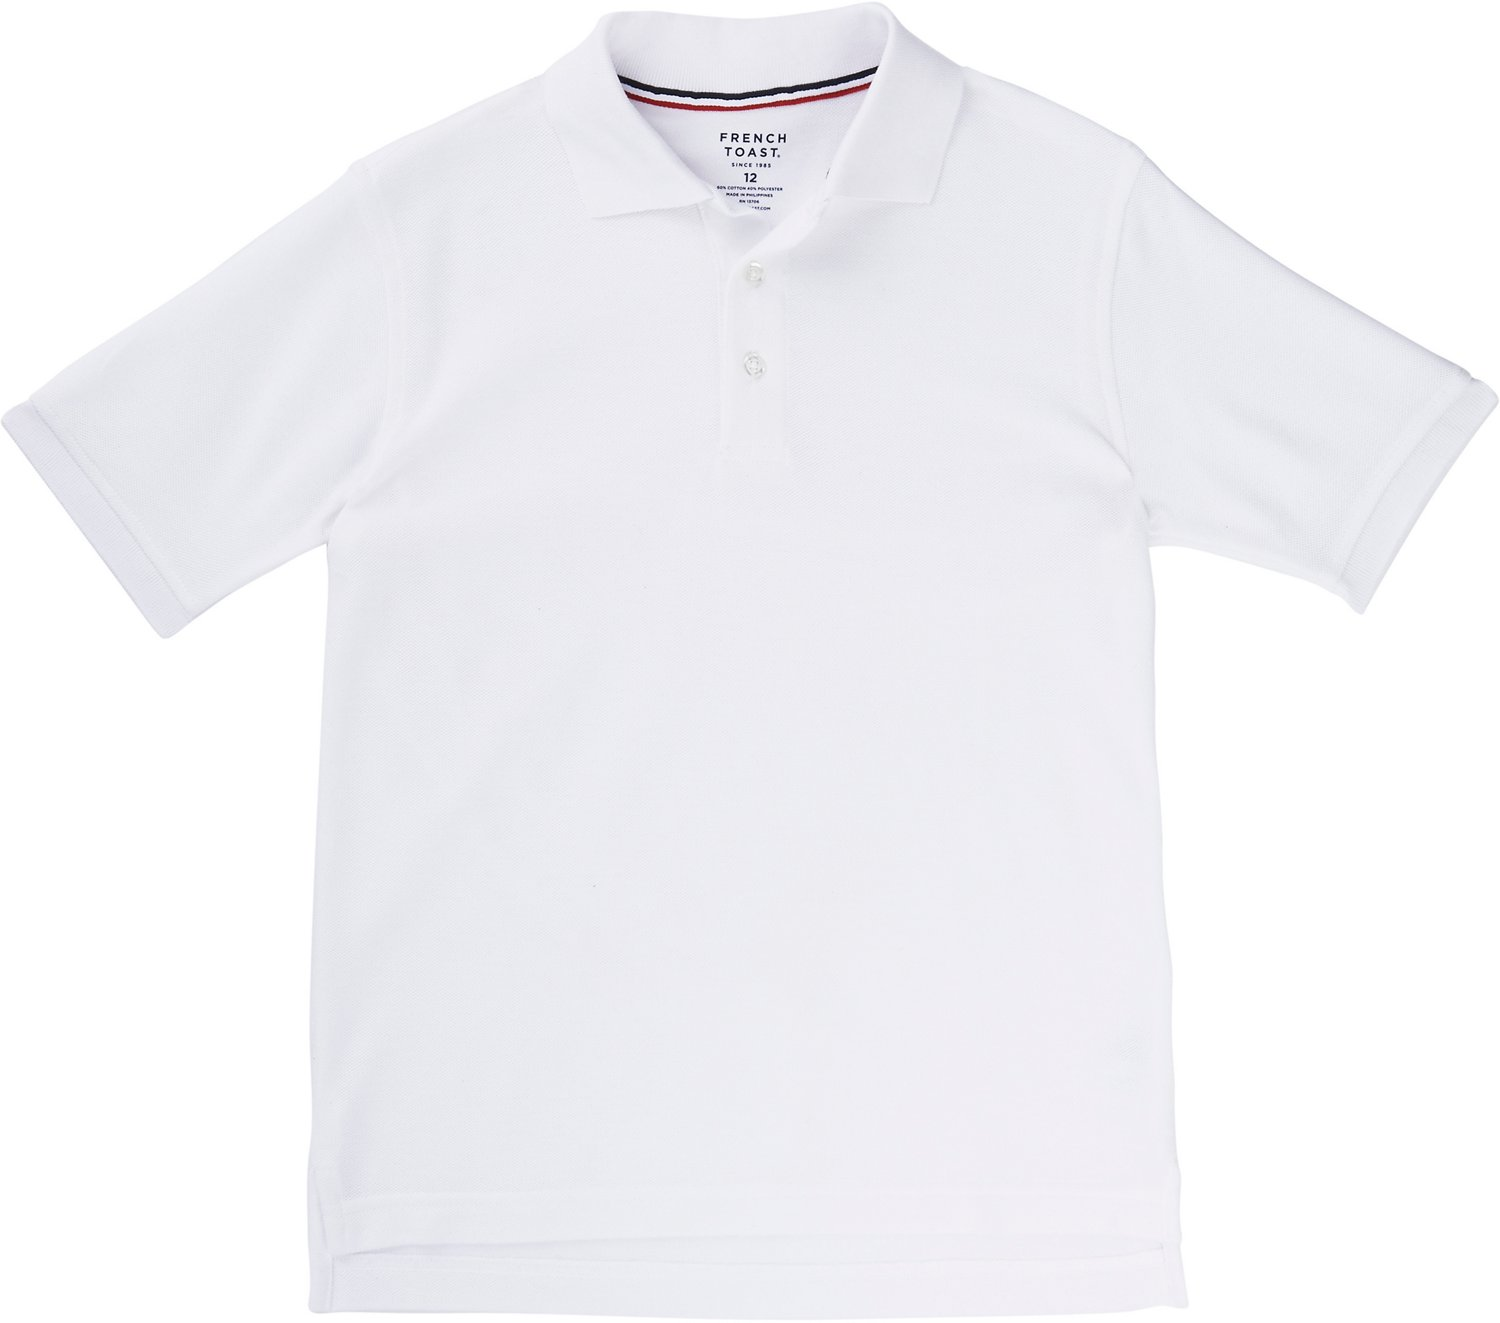 ed634cb4 Display product reviews for French Toast Toddler Boys' Short Sleeve Pique Polo  Shirt